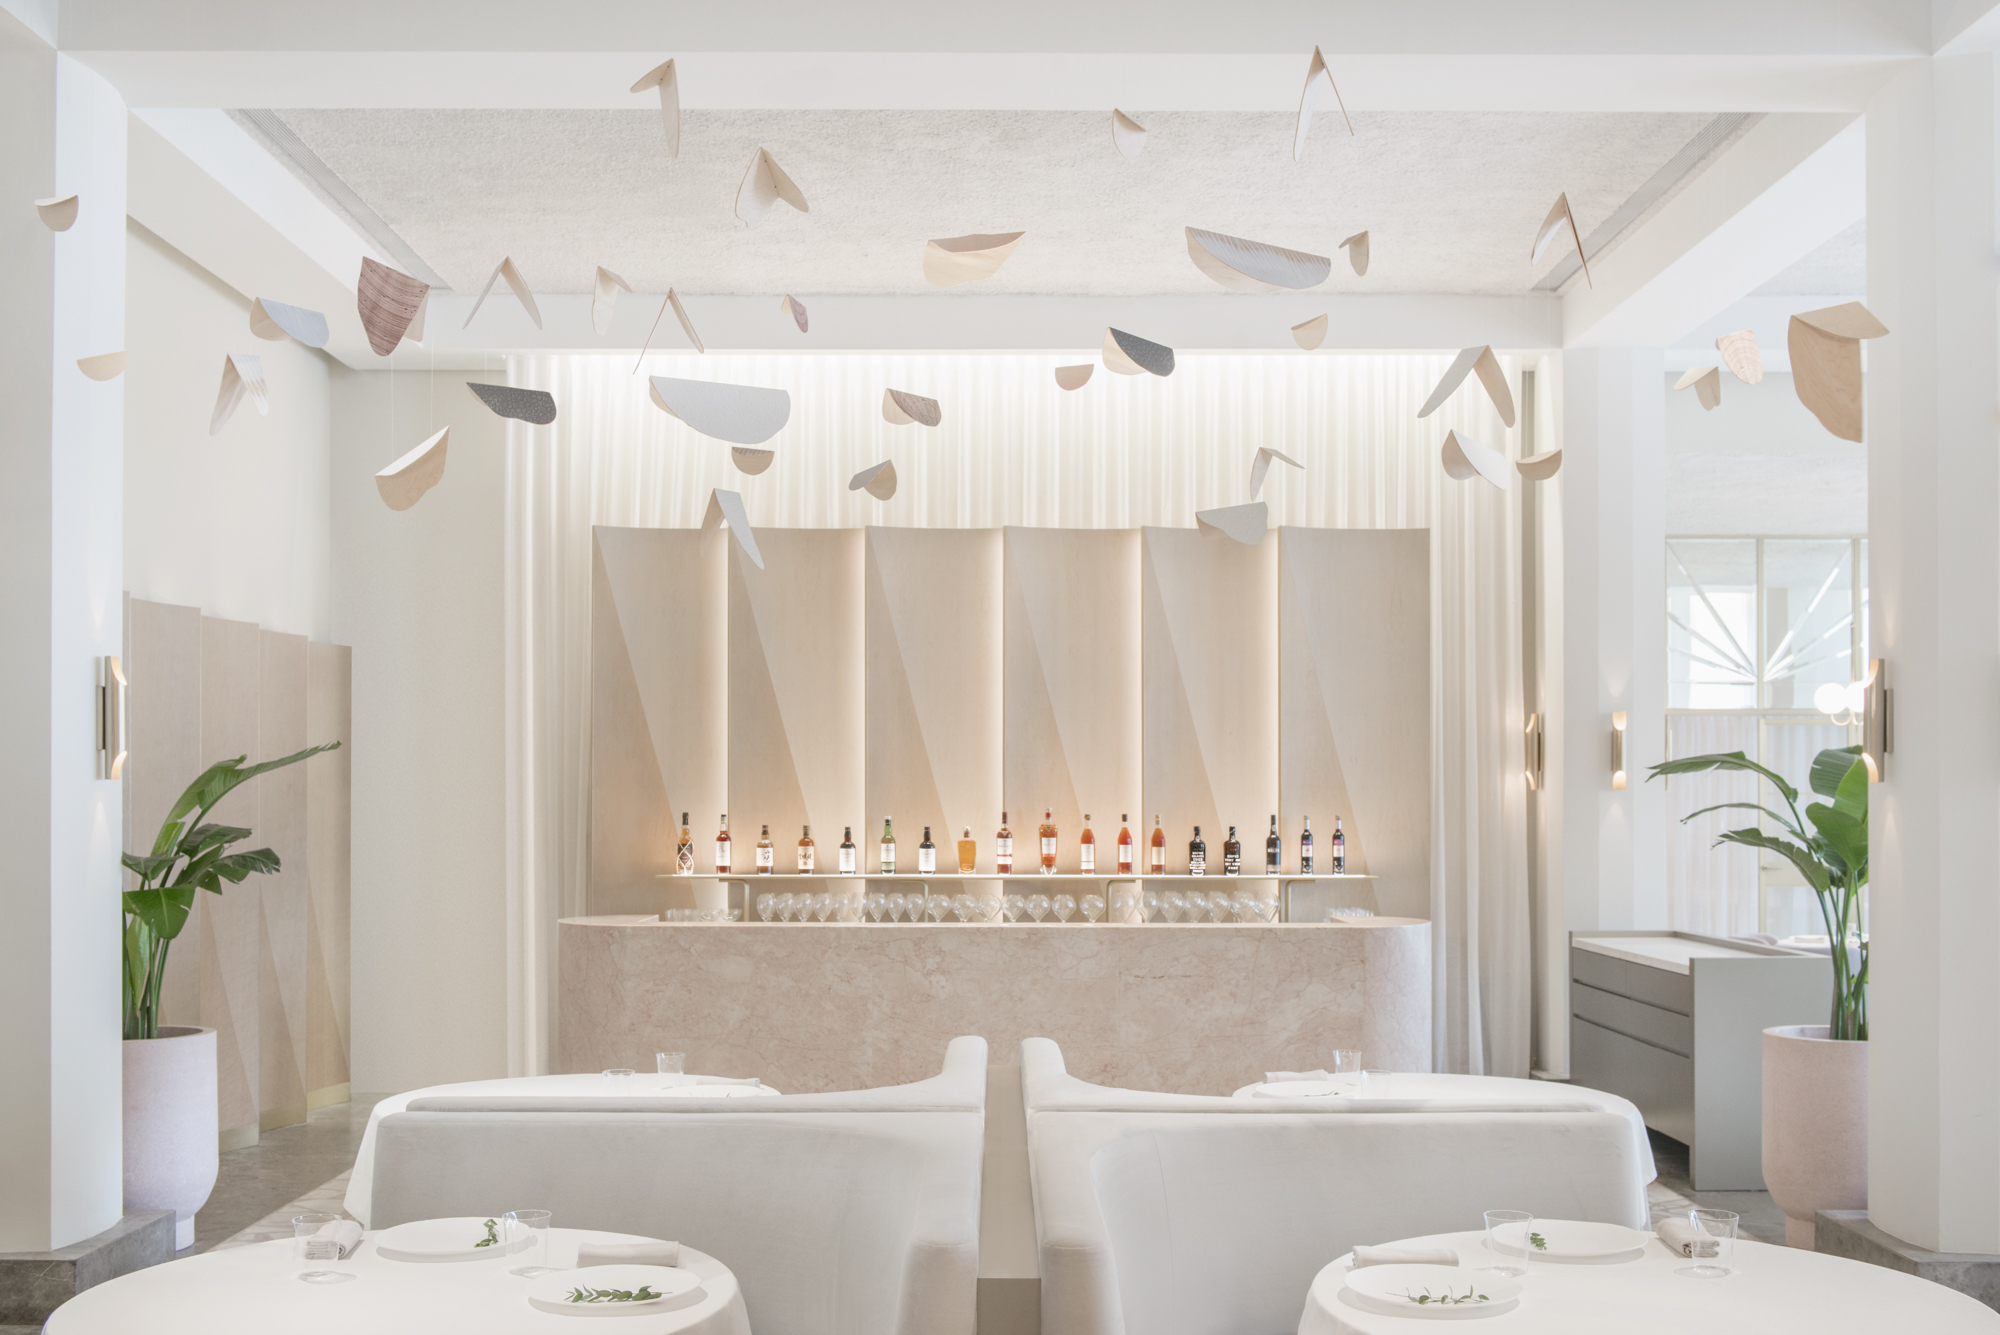 Odette, one of the several F&B outlets at the gallery. Photo: National Gallery Singapore